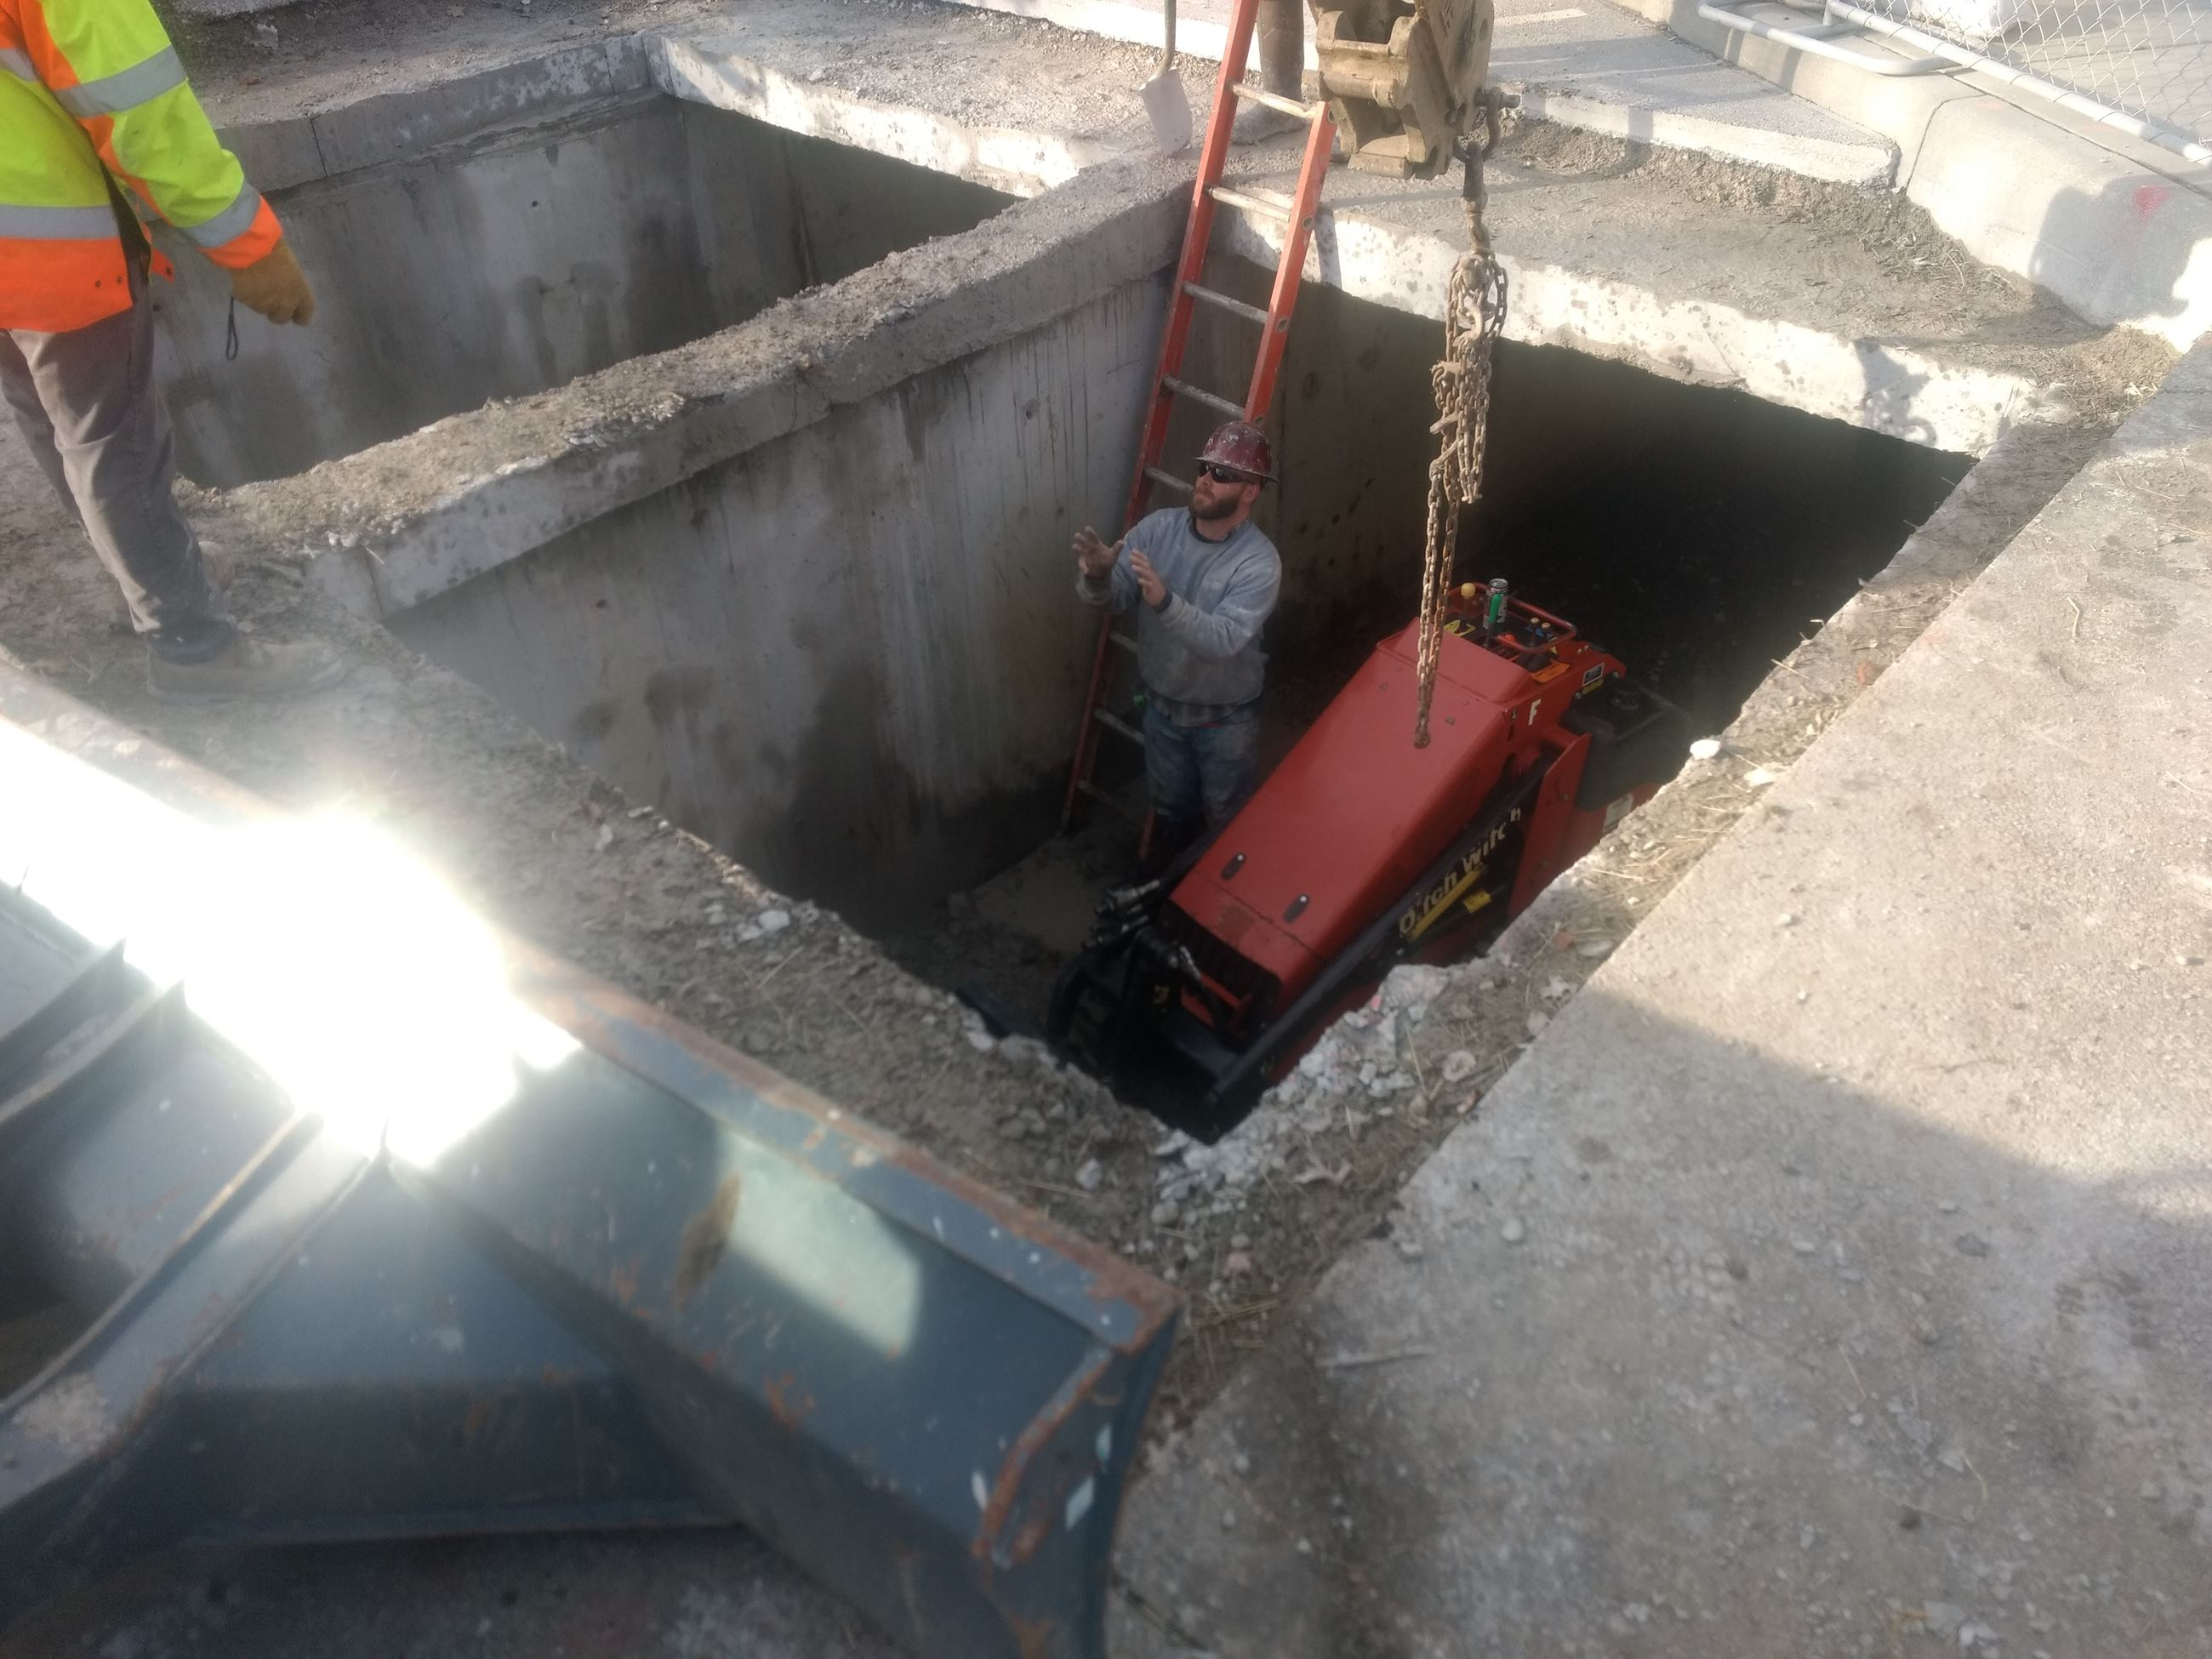 Bainbridge Culvert Access area - lowering mini skid steer